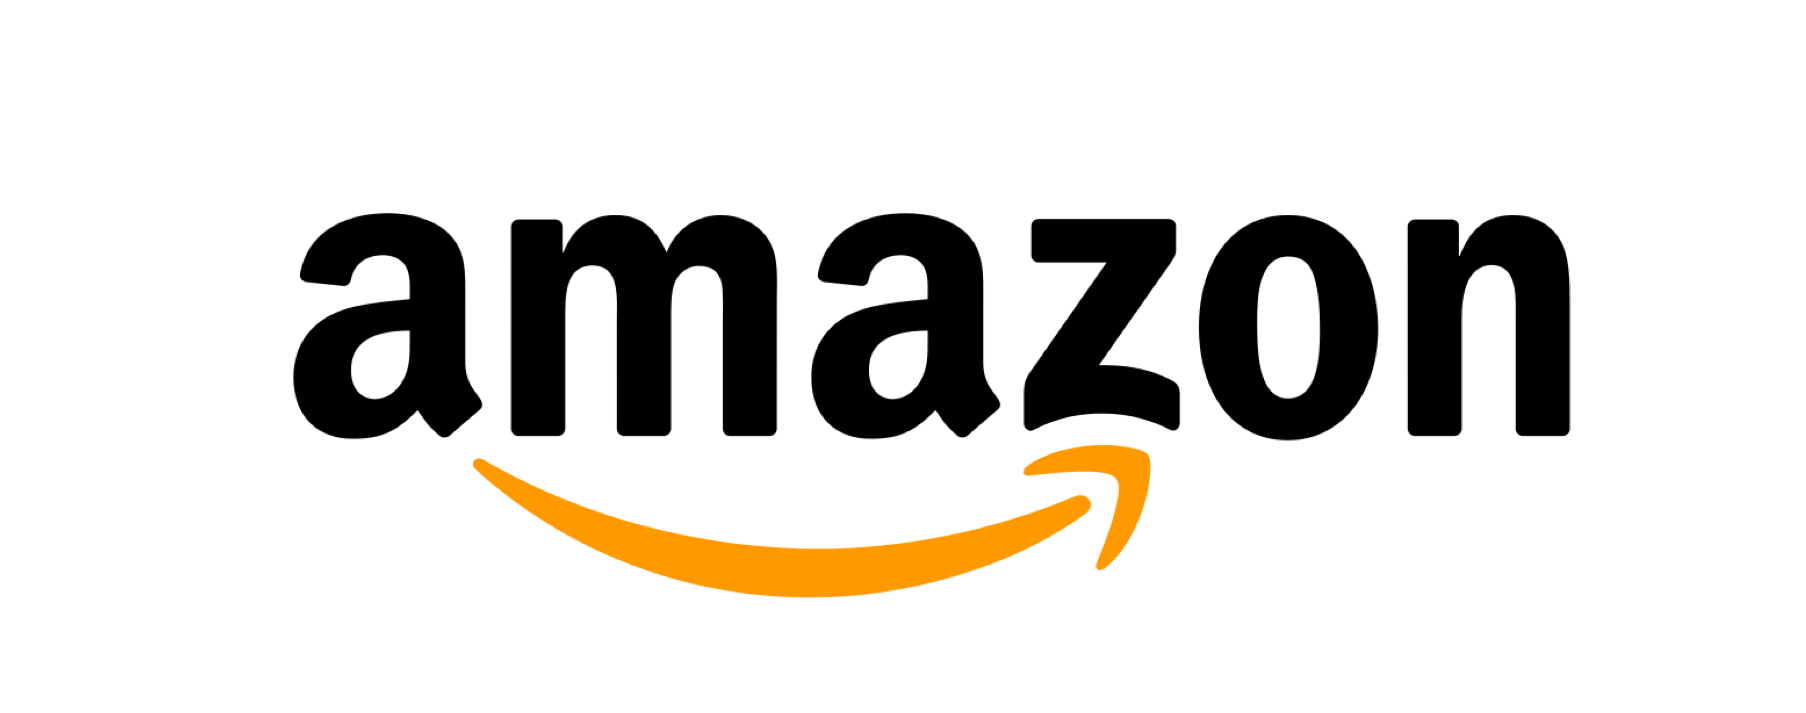 Amazon-Kindle-logo copy.png